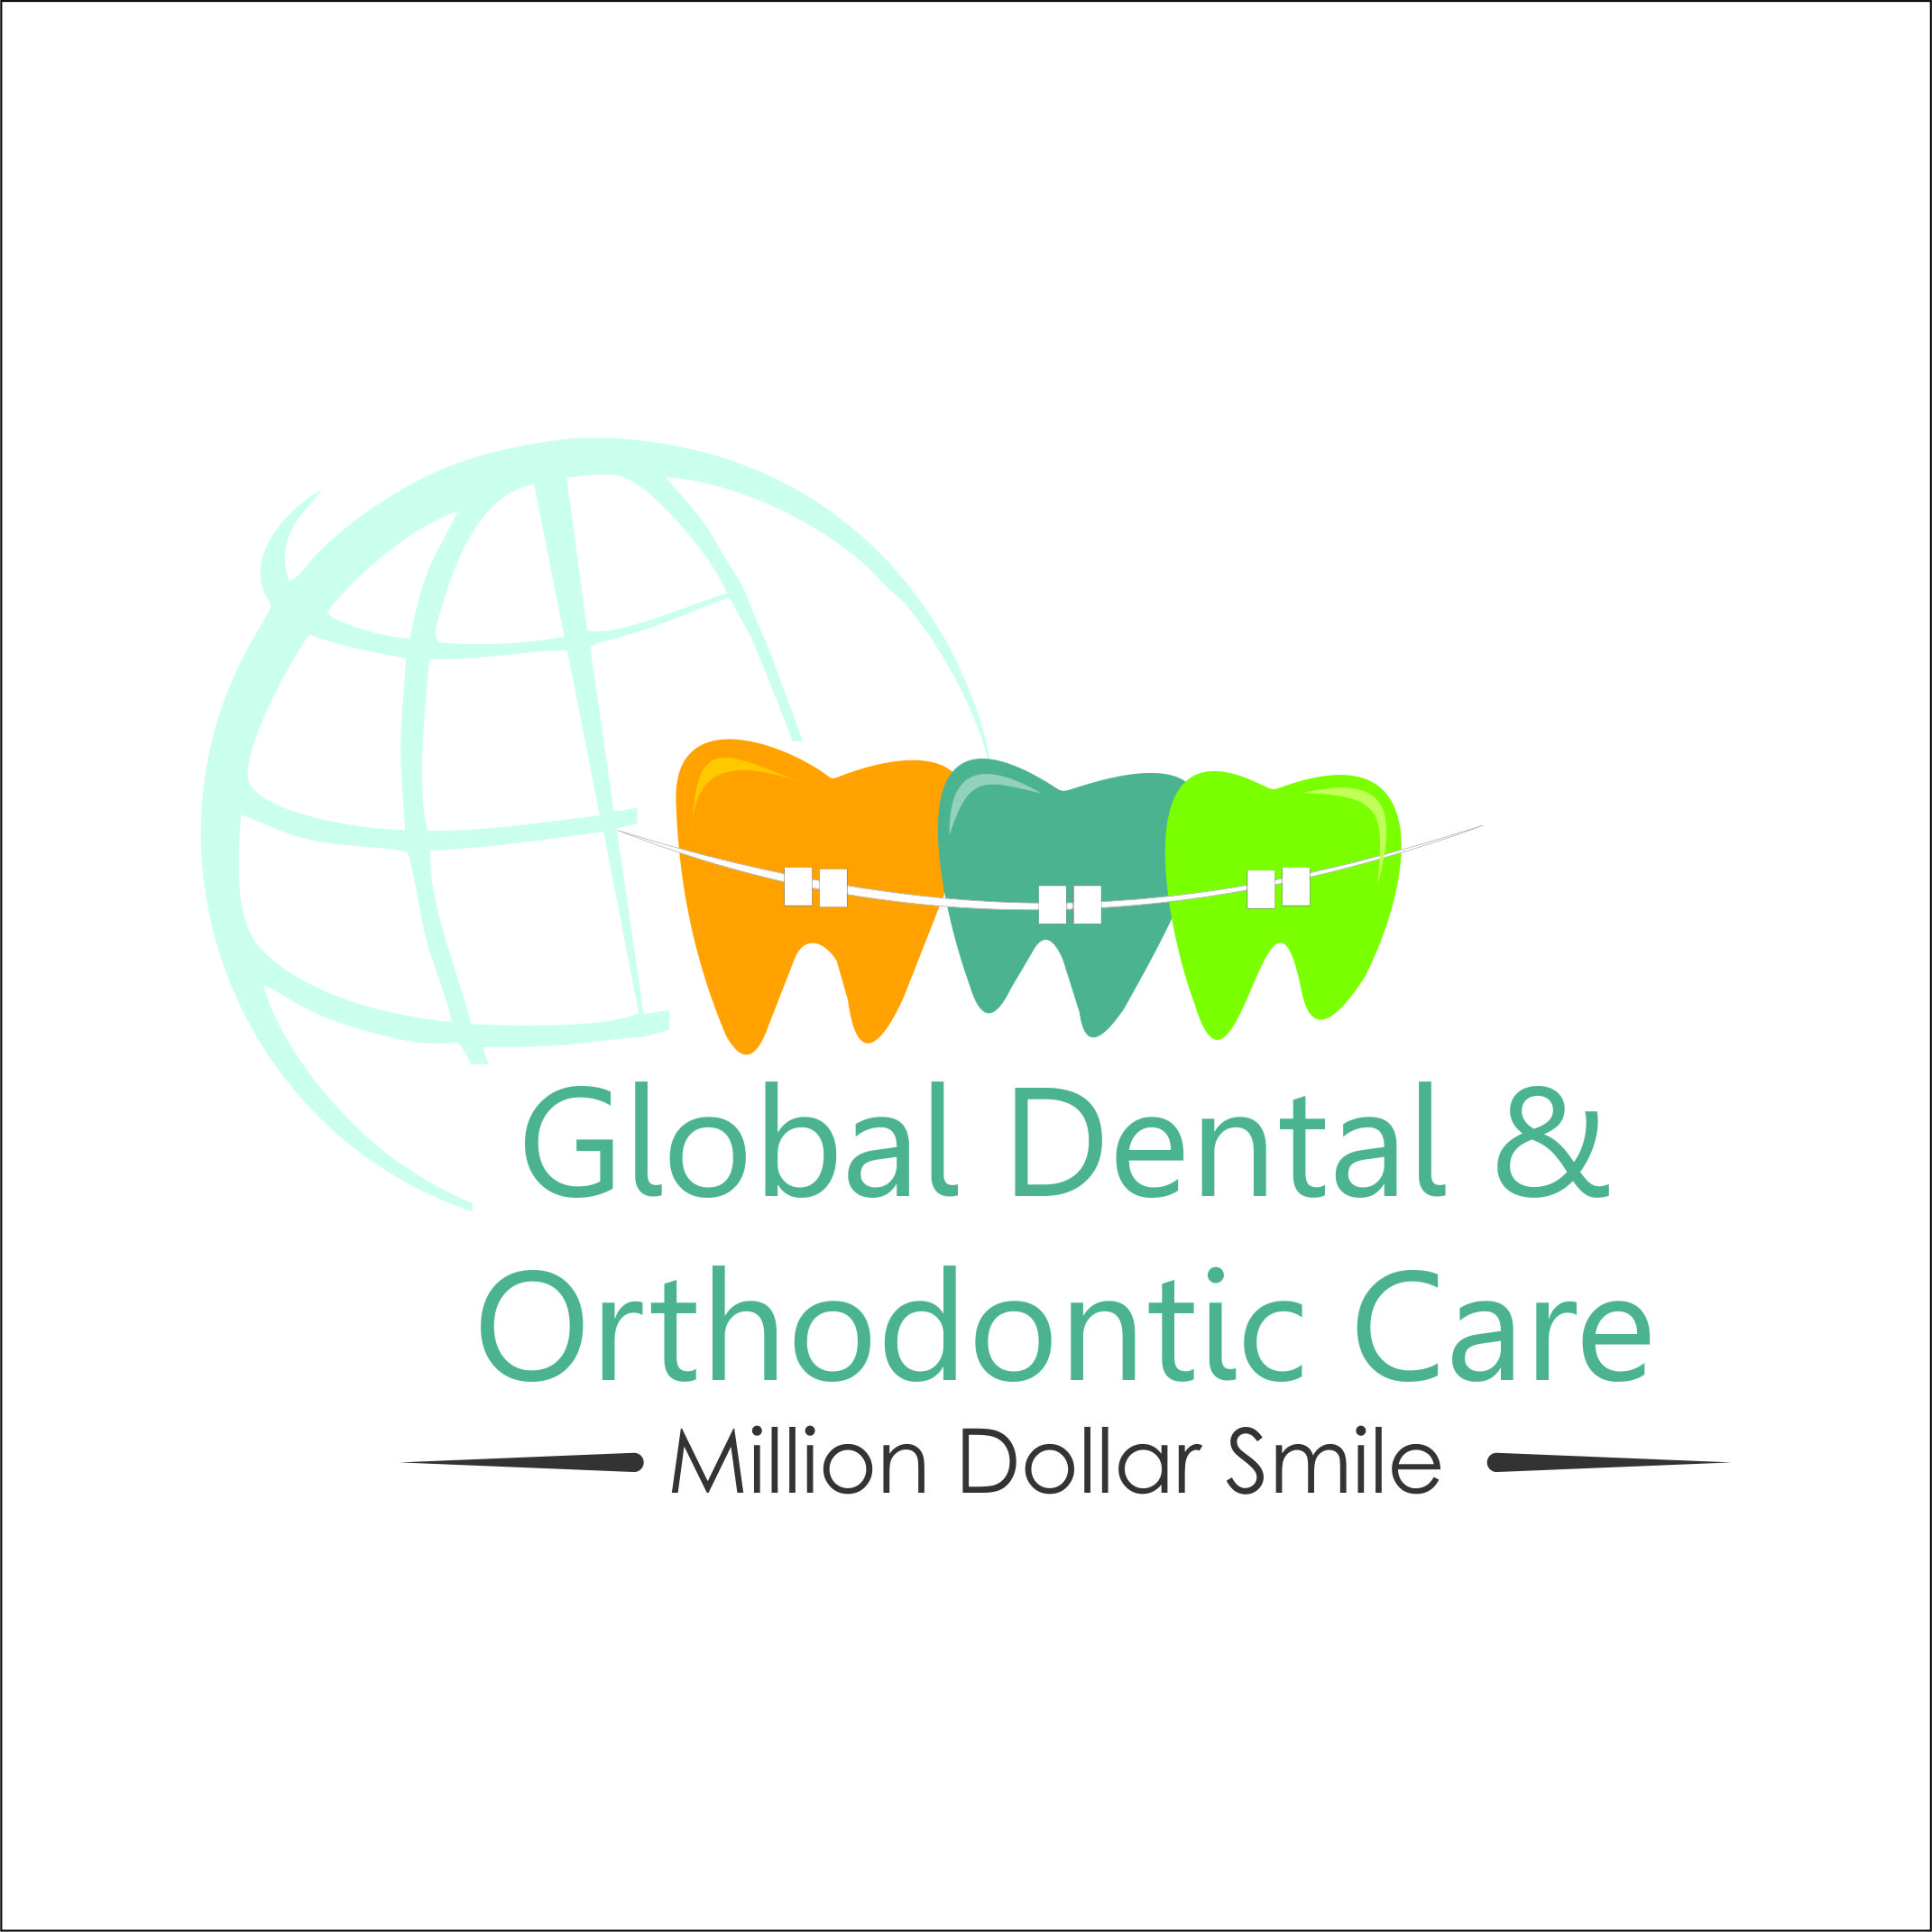 Global Dental and Orthodontic Care